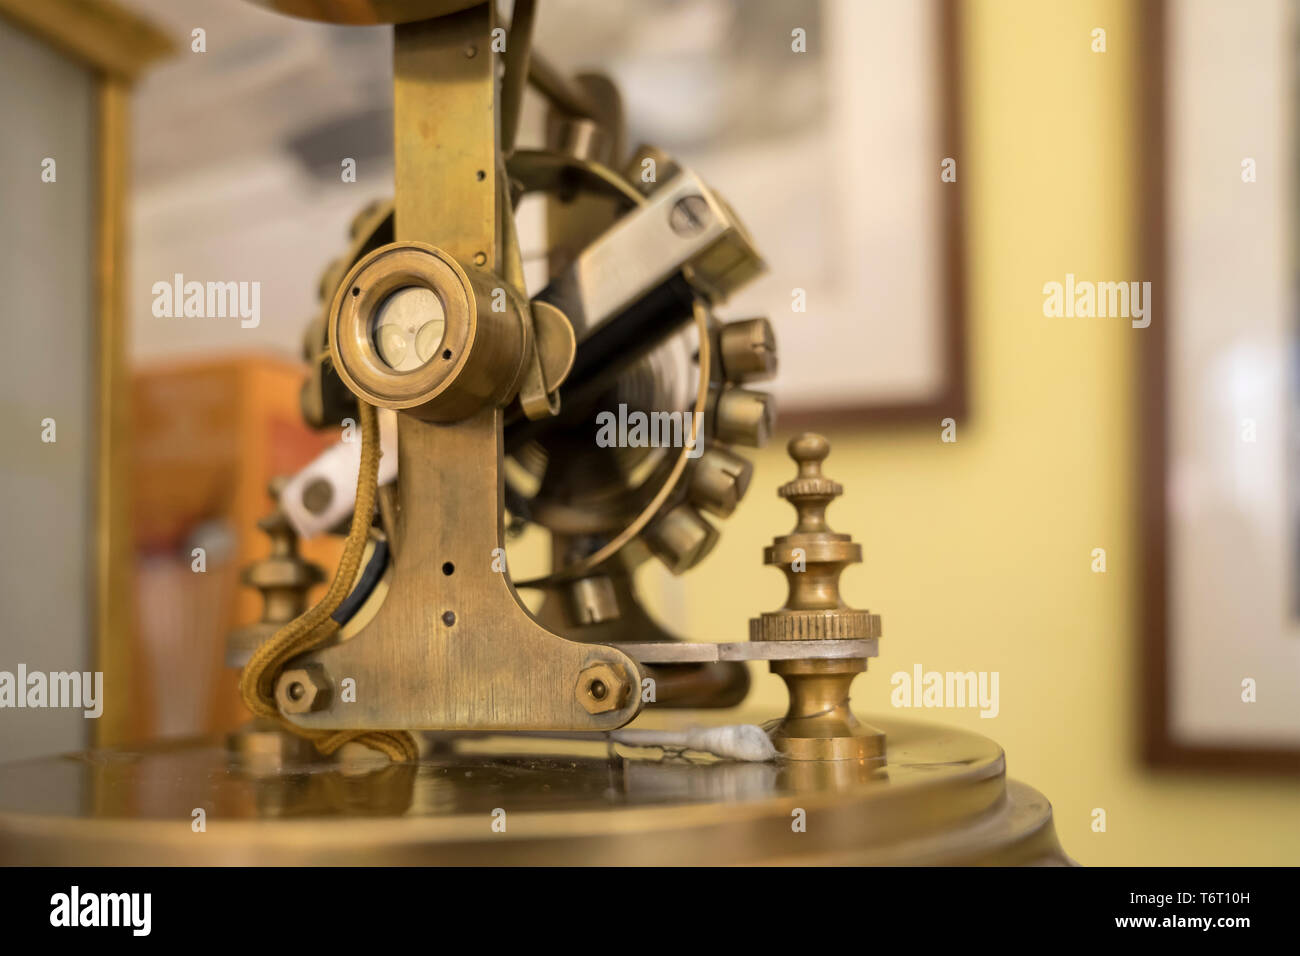 detail  of handcraft rotating pendulum in motion, shot at Milan, Italy - Stock Image